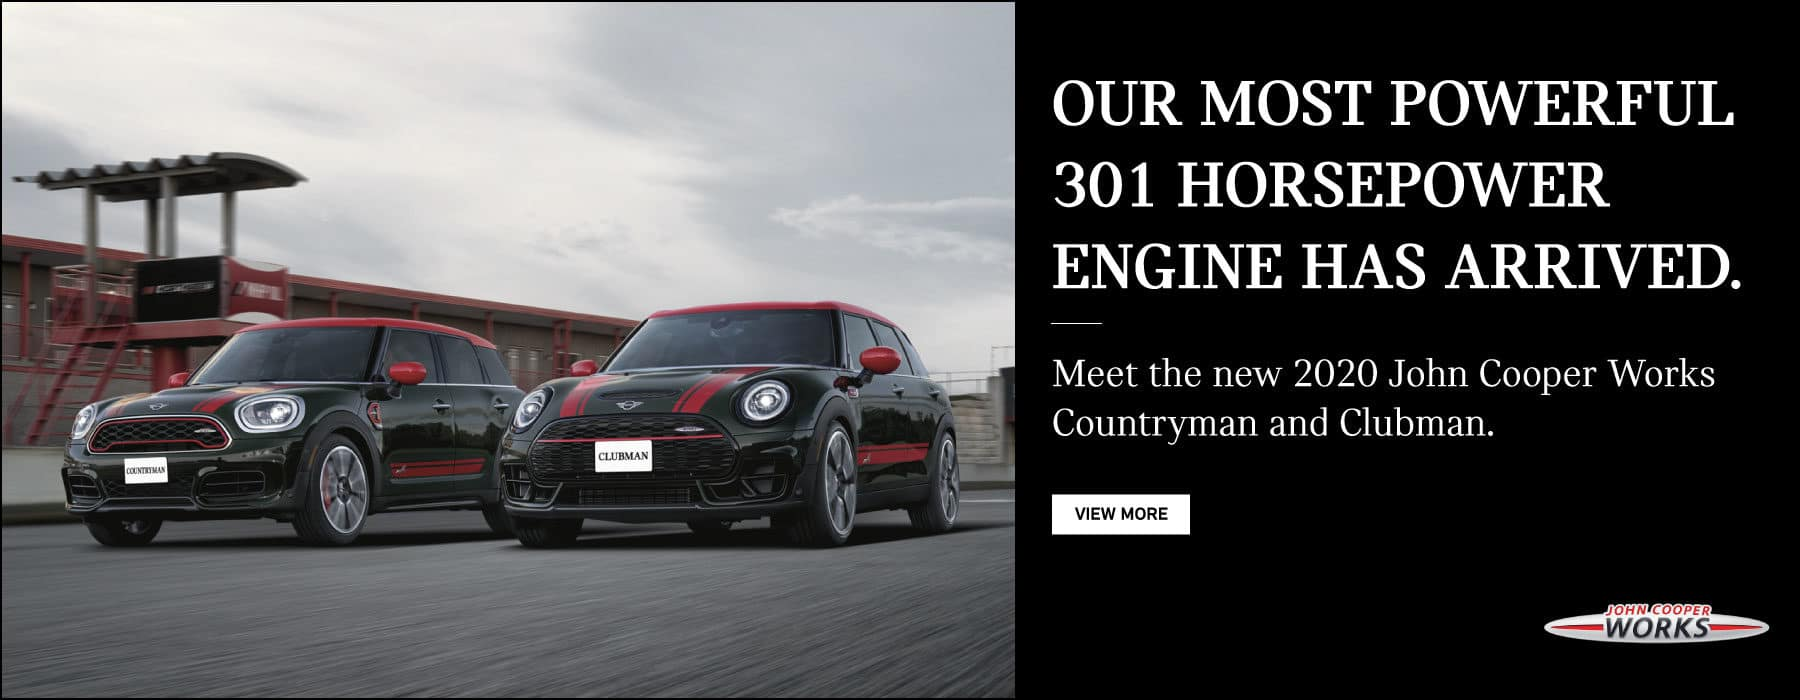 Our most powerful 301 horsepower engine has arrived.  Meet the new 2020 John Cooper Works Countryman and Clubman.  View More.  John Cooper Works. A MINI JCW Countryman and Clubman driving side by side on race track.